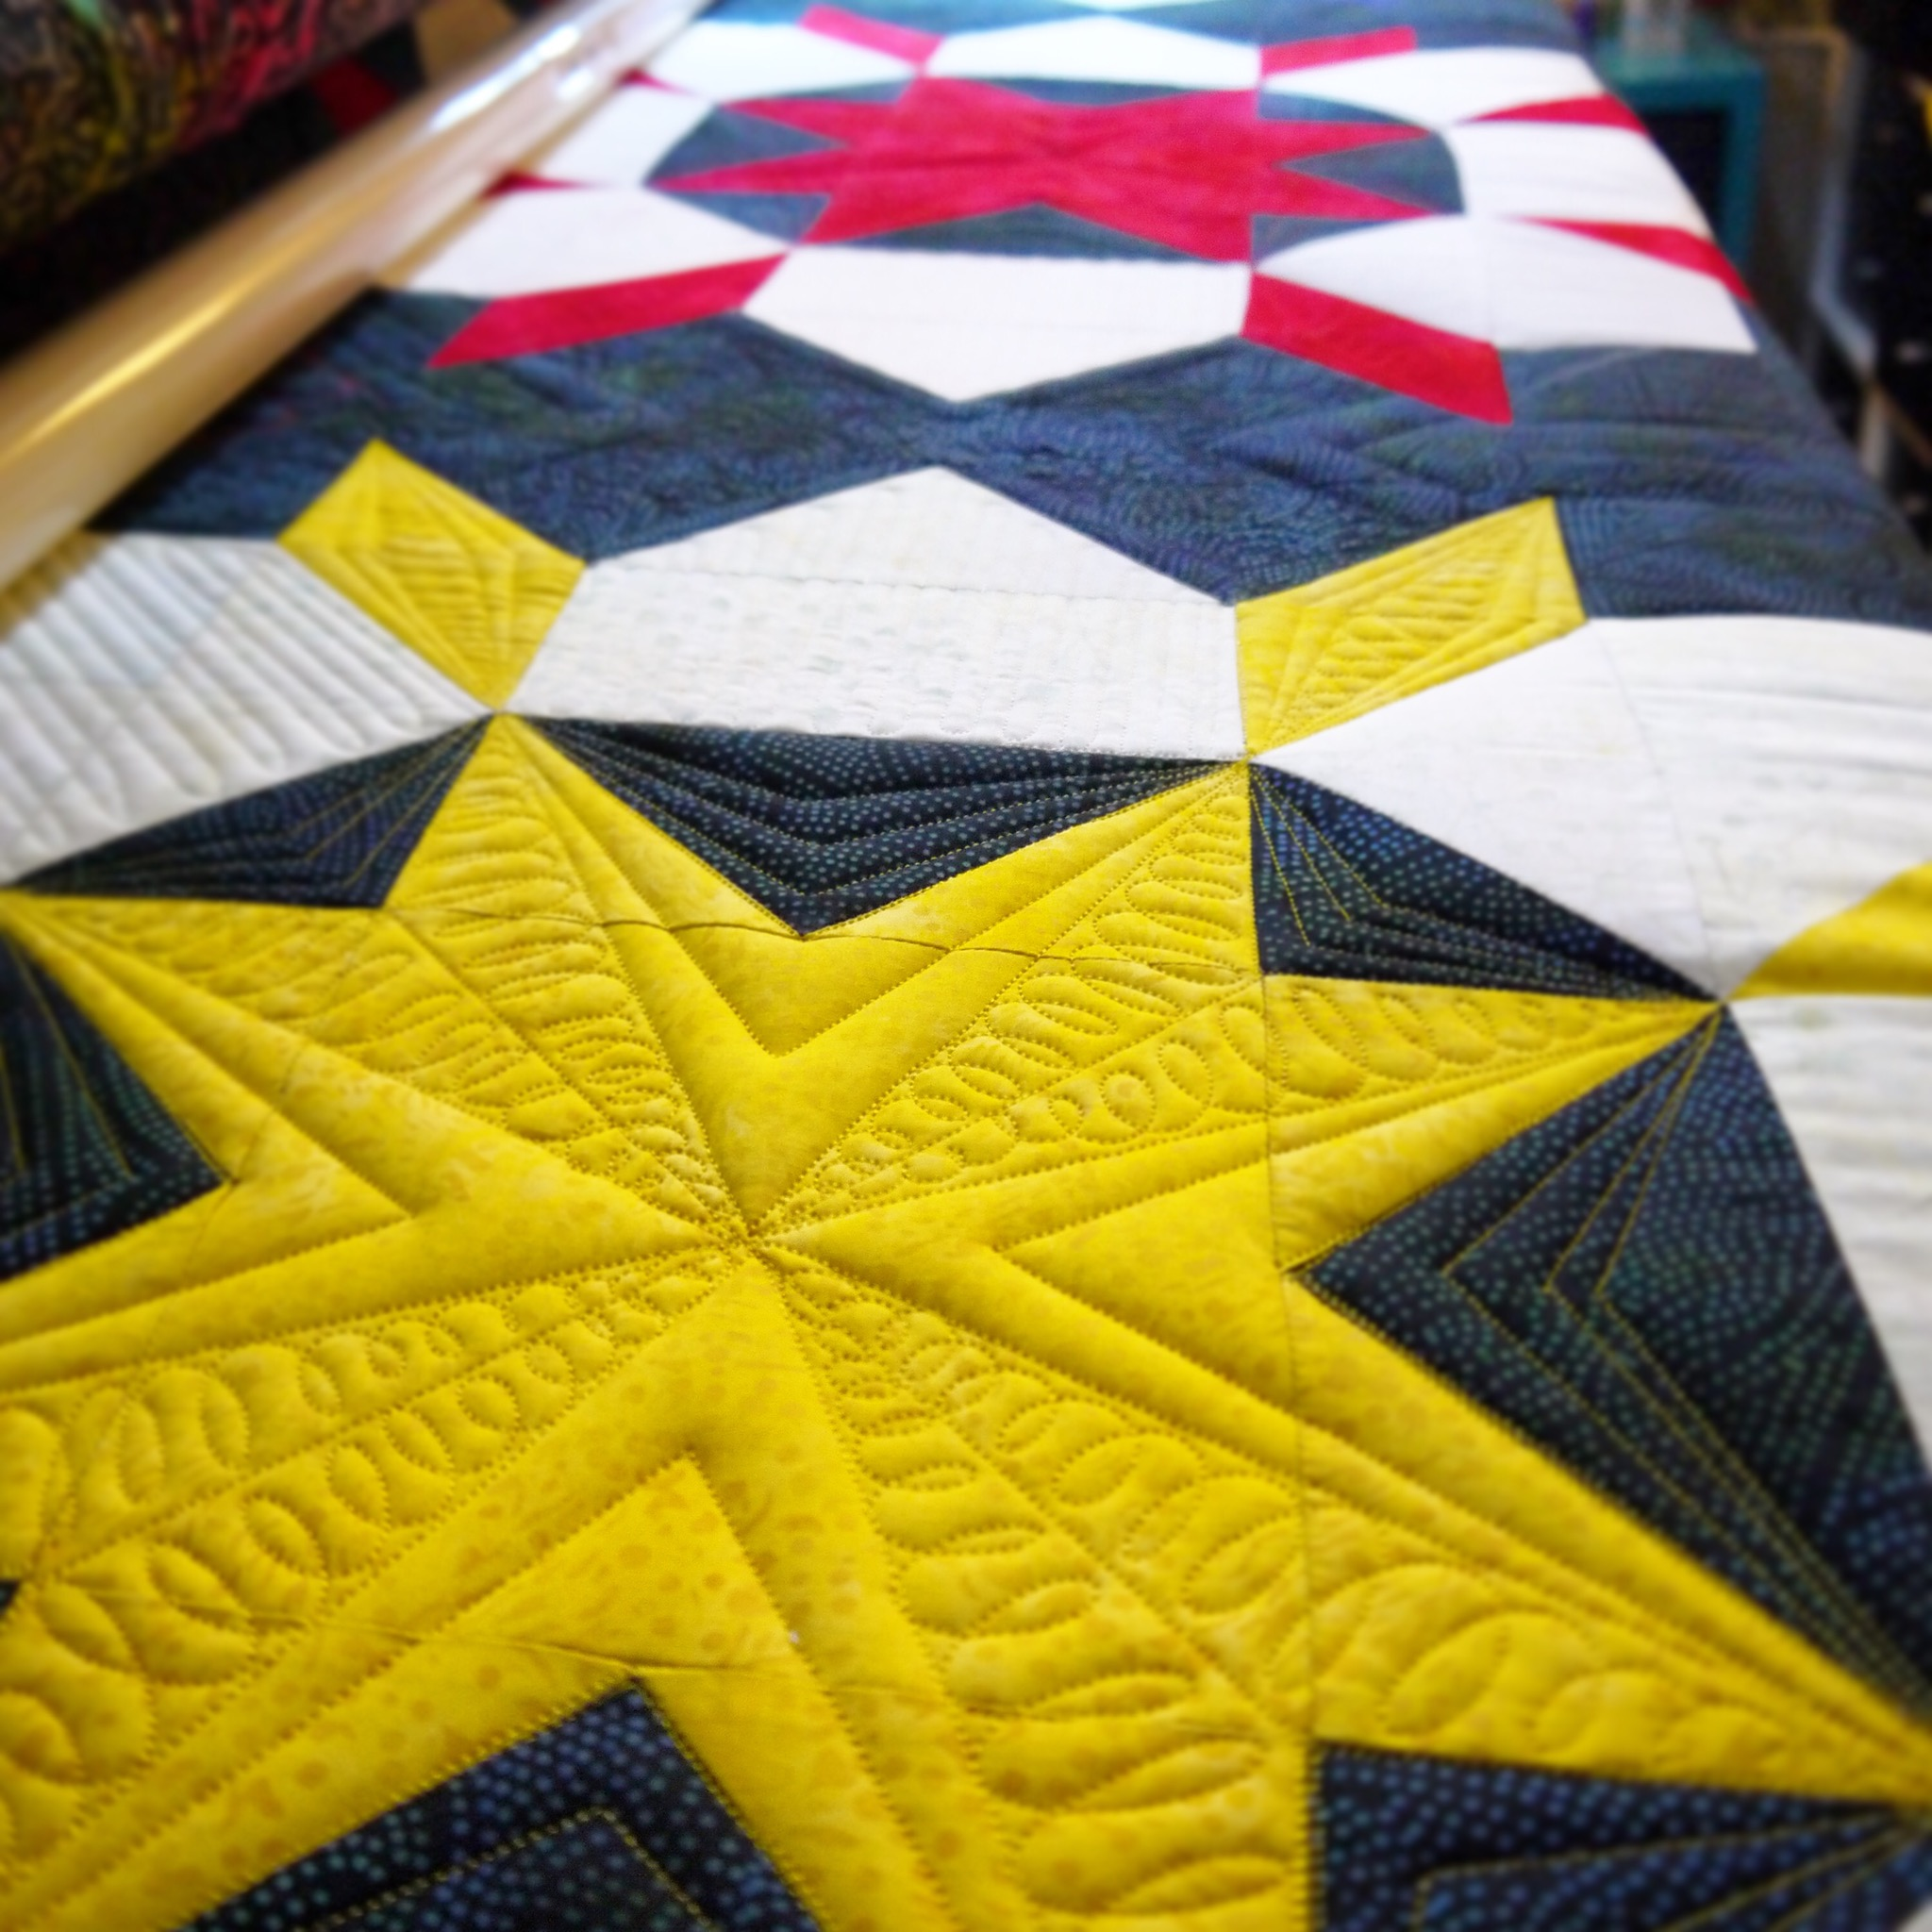 Free Motion Quilting Patterns For Blocks : Quilting Designs for Different Blocks on Pinterest Quilting, Free Motion Quilting and Machine ...